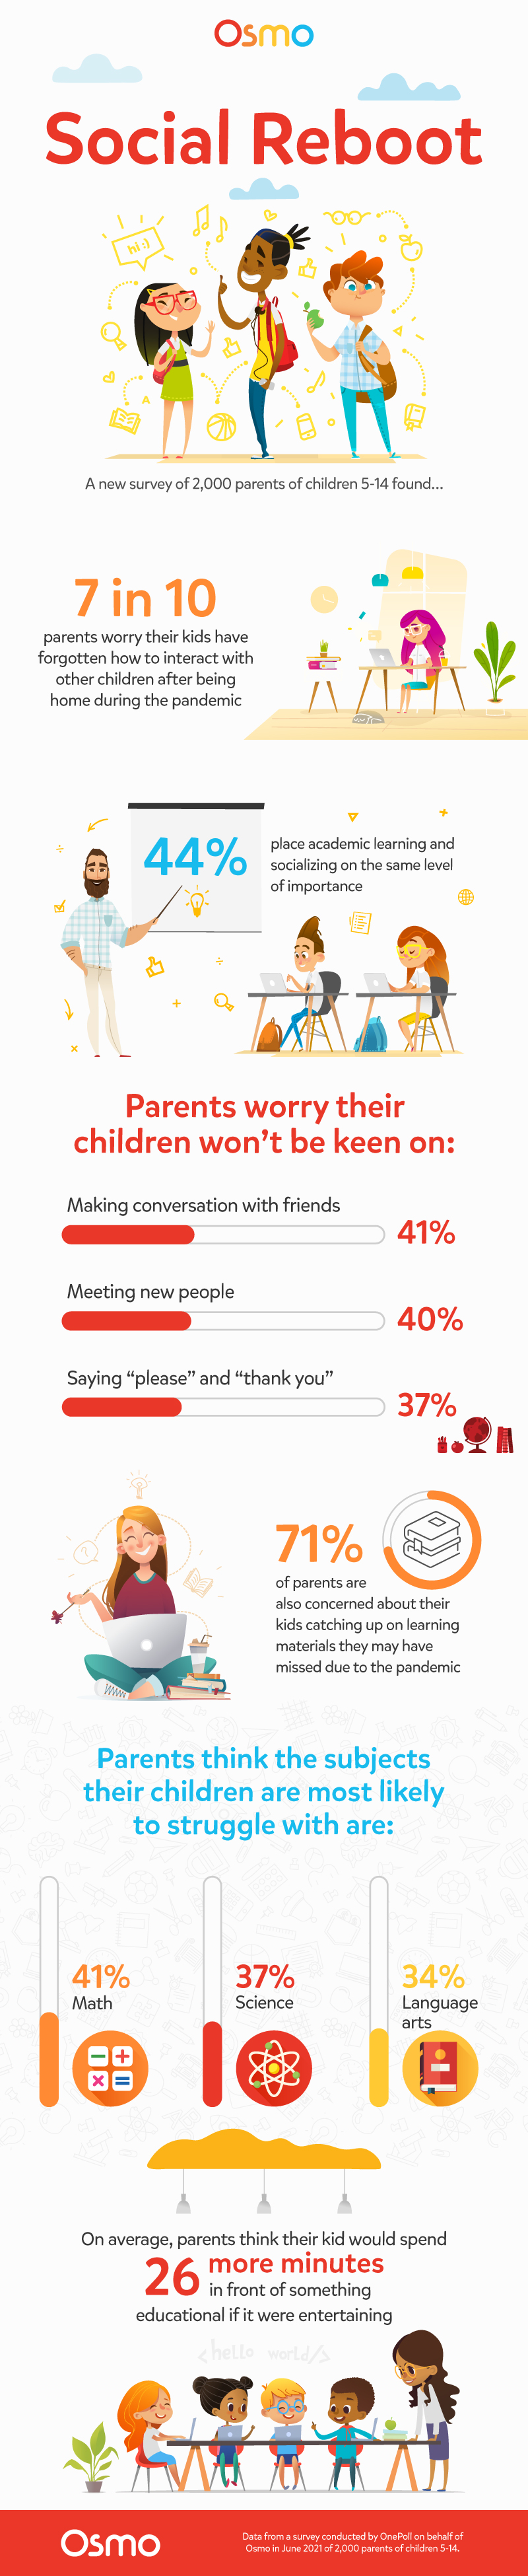 7 in 10 parents say children's post-pandemic social skills are at risk, per STEAM brand Osmo's latest study; and 81% of parents want schools to implement activities teaching their kids social skills.